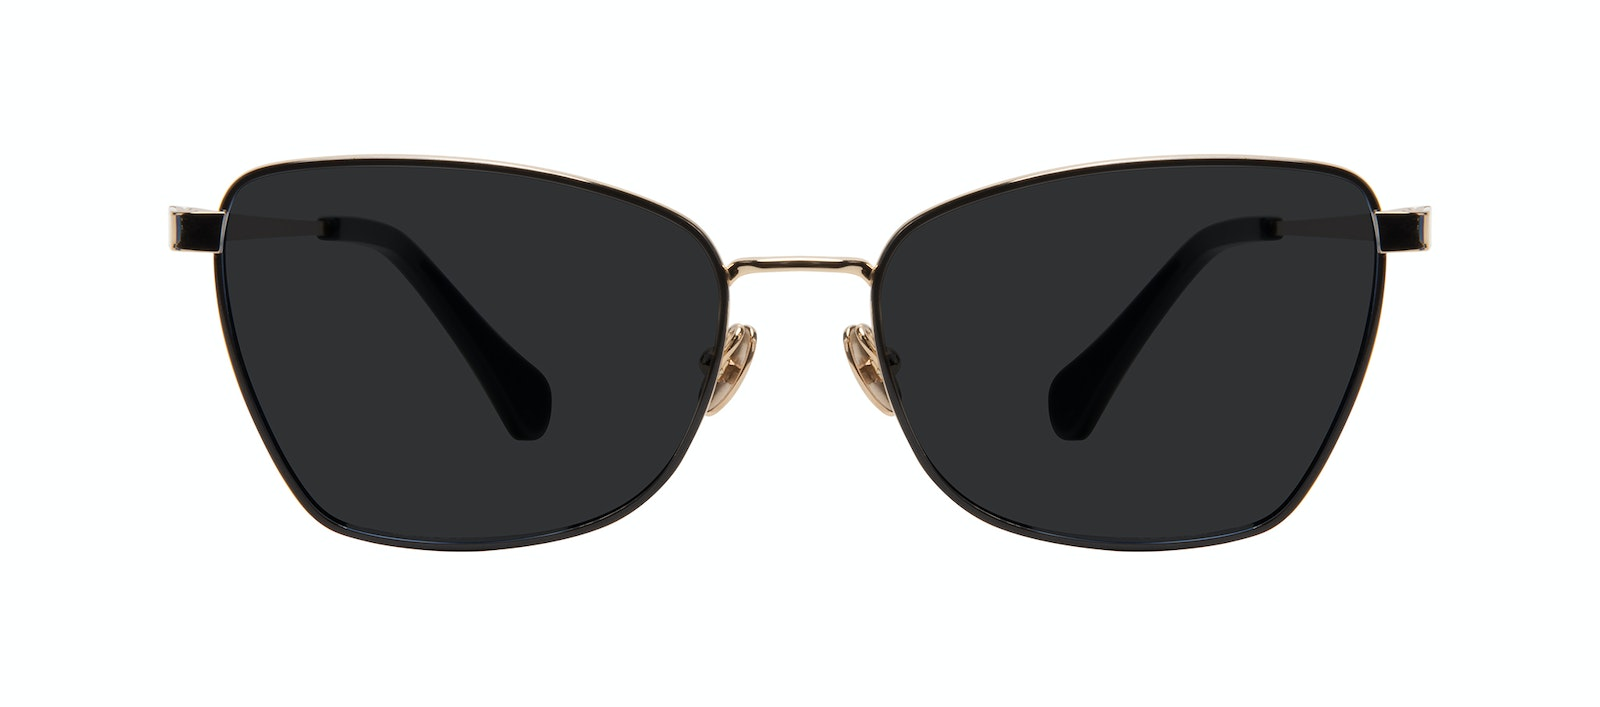 Affordable Fashion Glasses Cat Eye Sunglasses Women Fancy Deep Gold Front